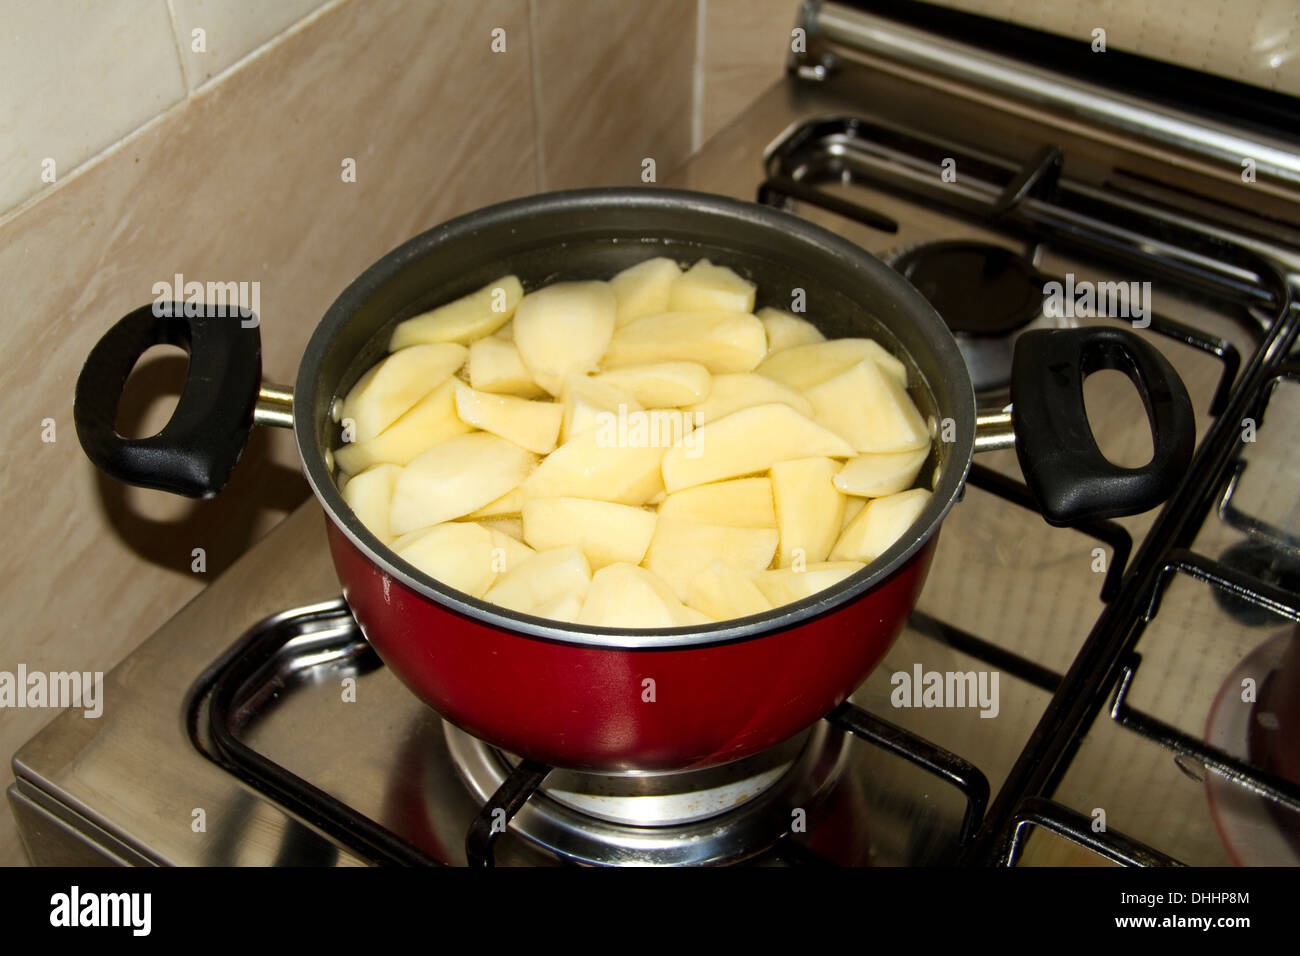 Cooking Potatoes in Cooking Pot - Stock Image